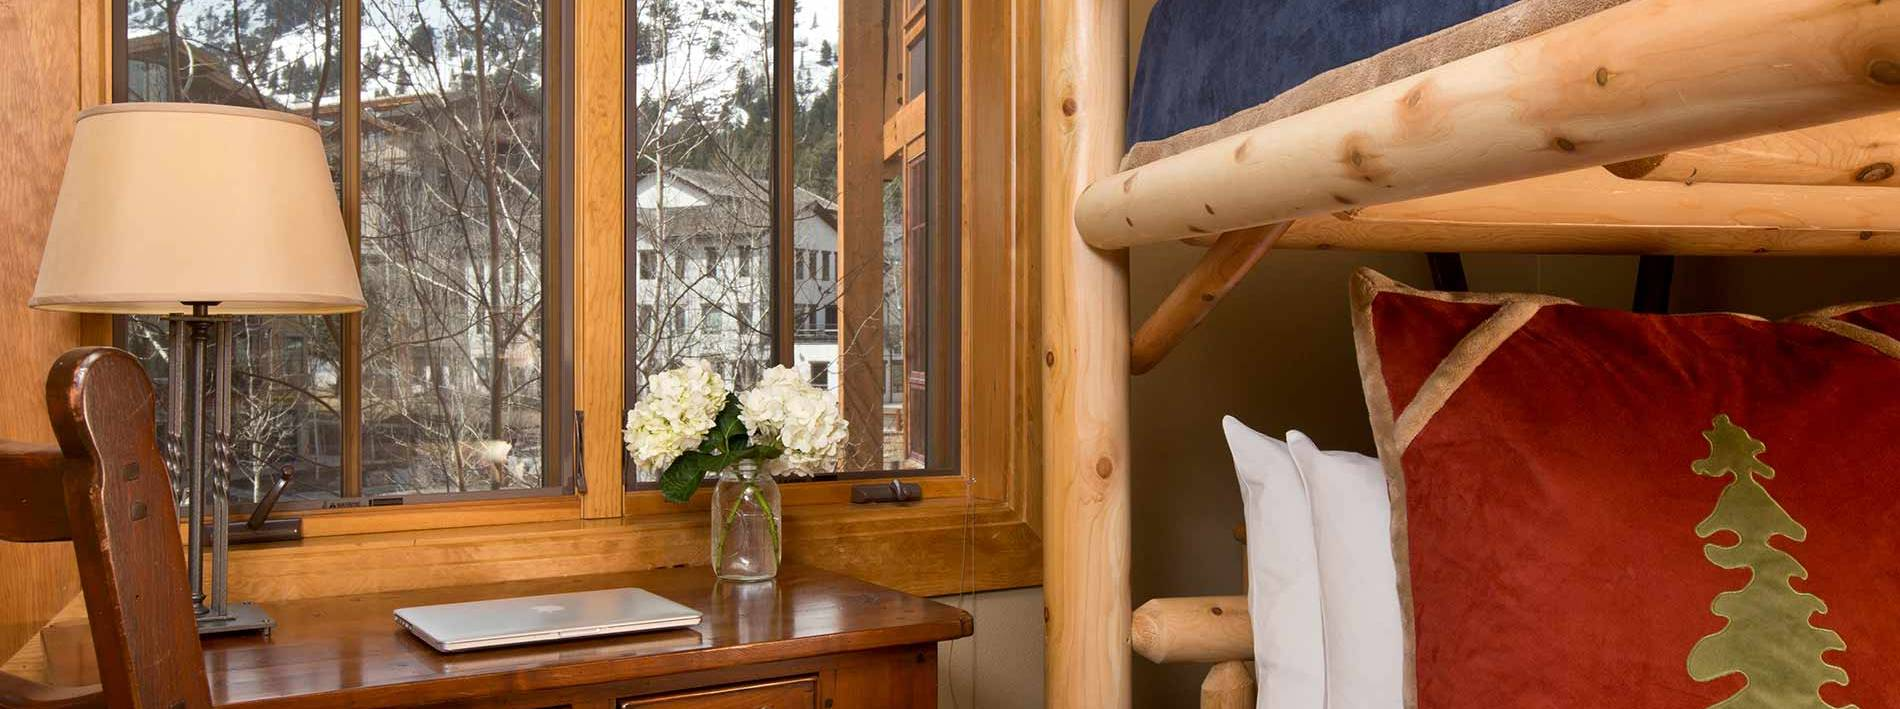 Bunk bed bedroom with large windows